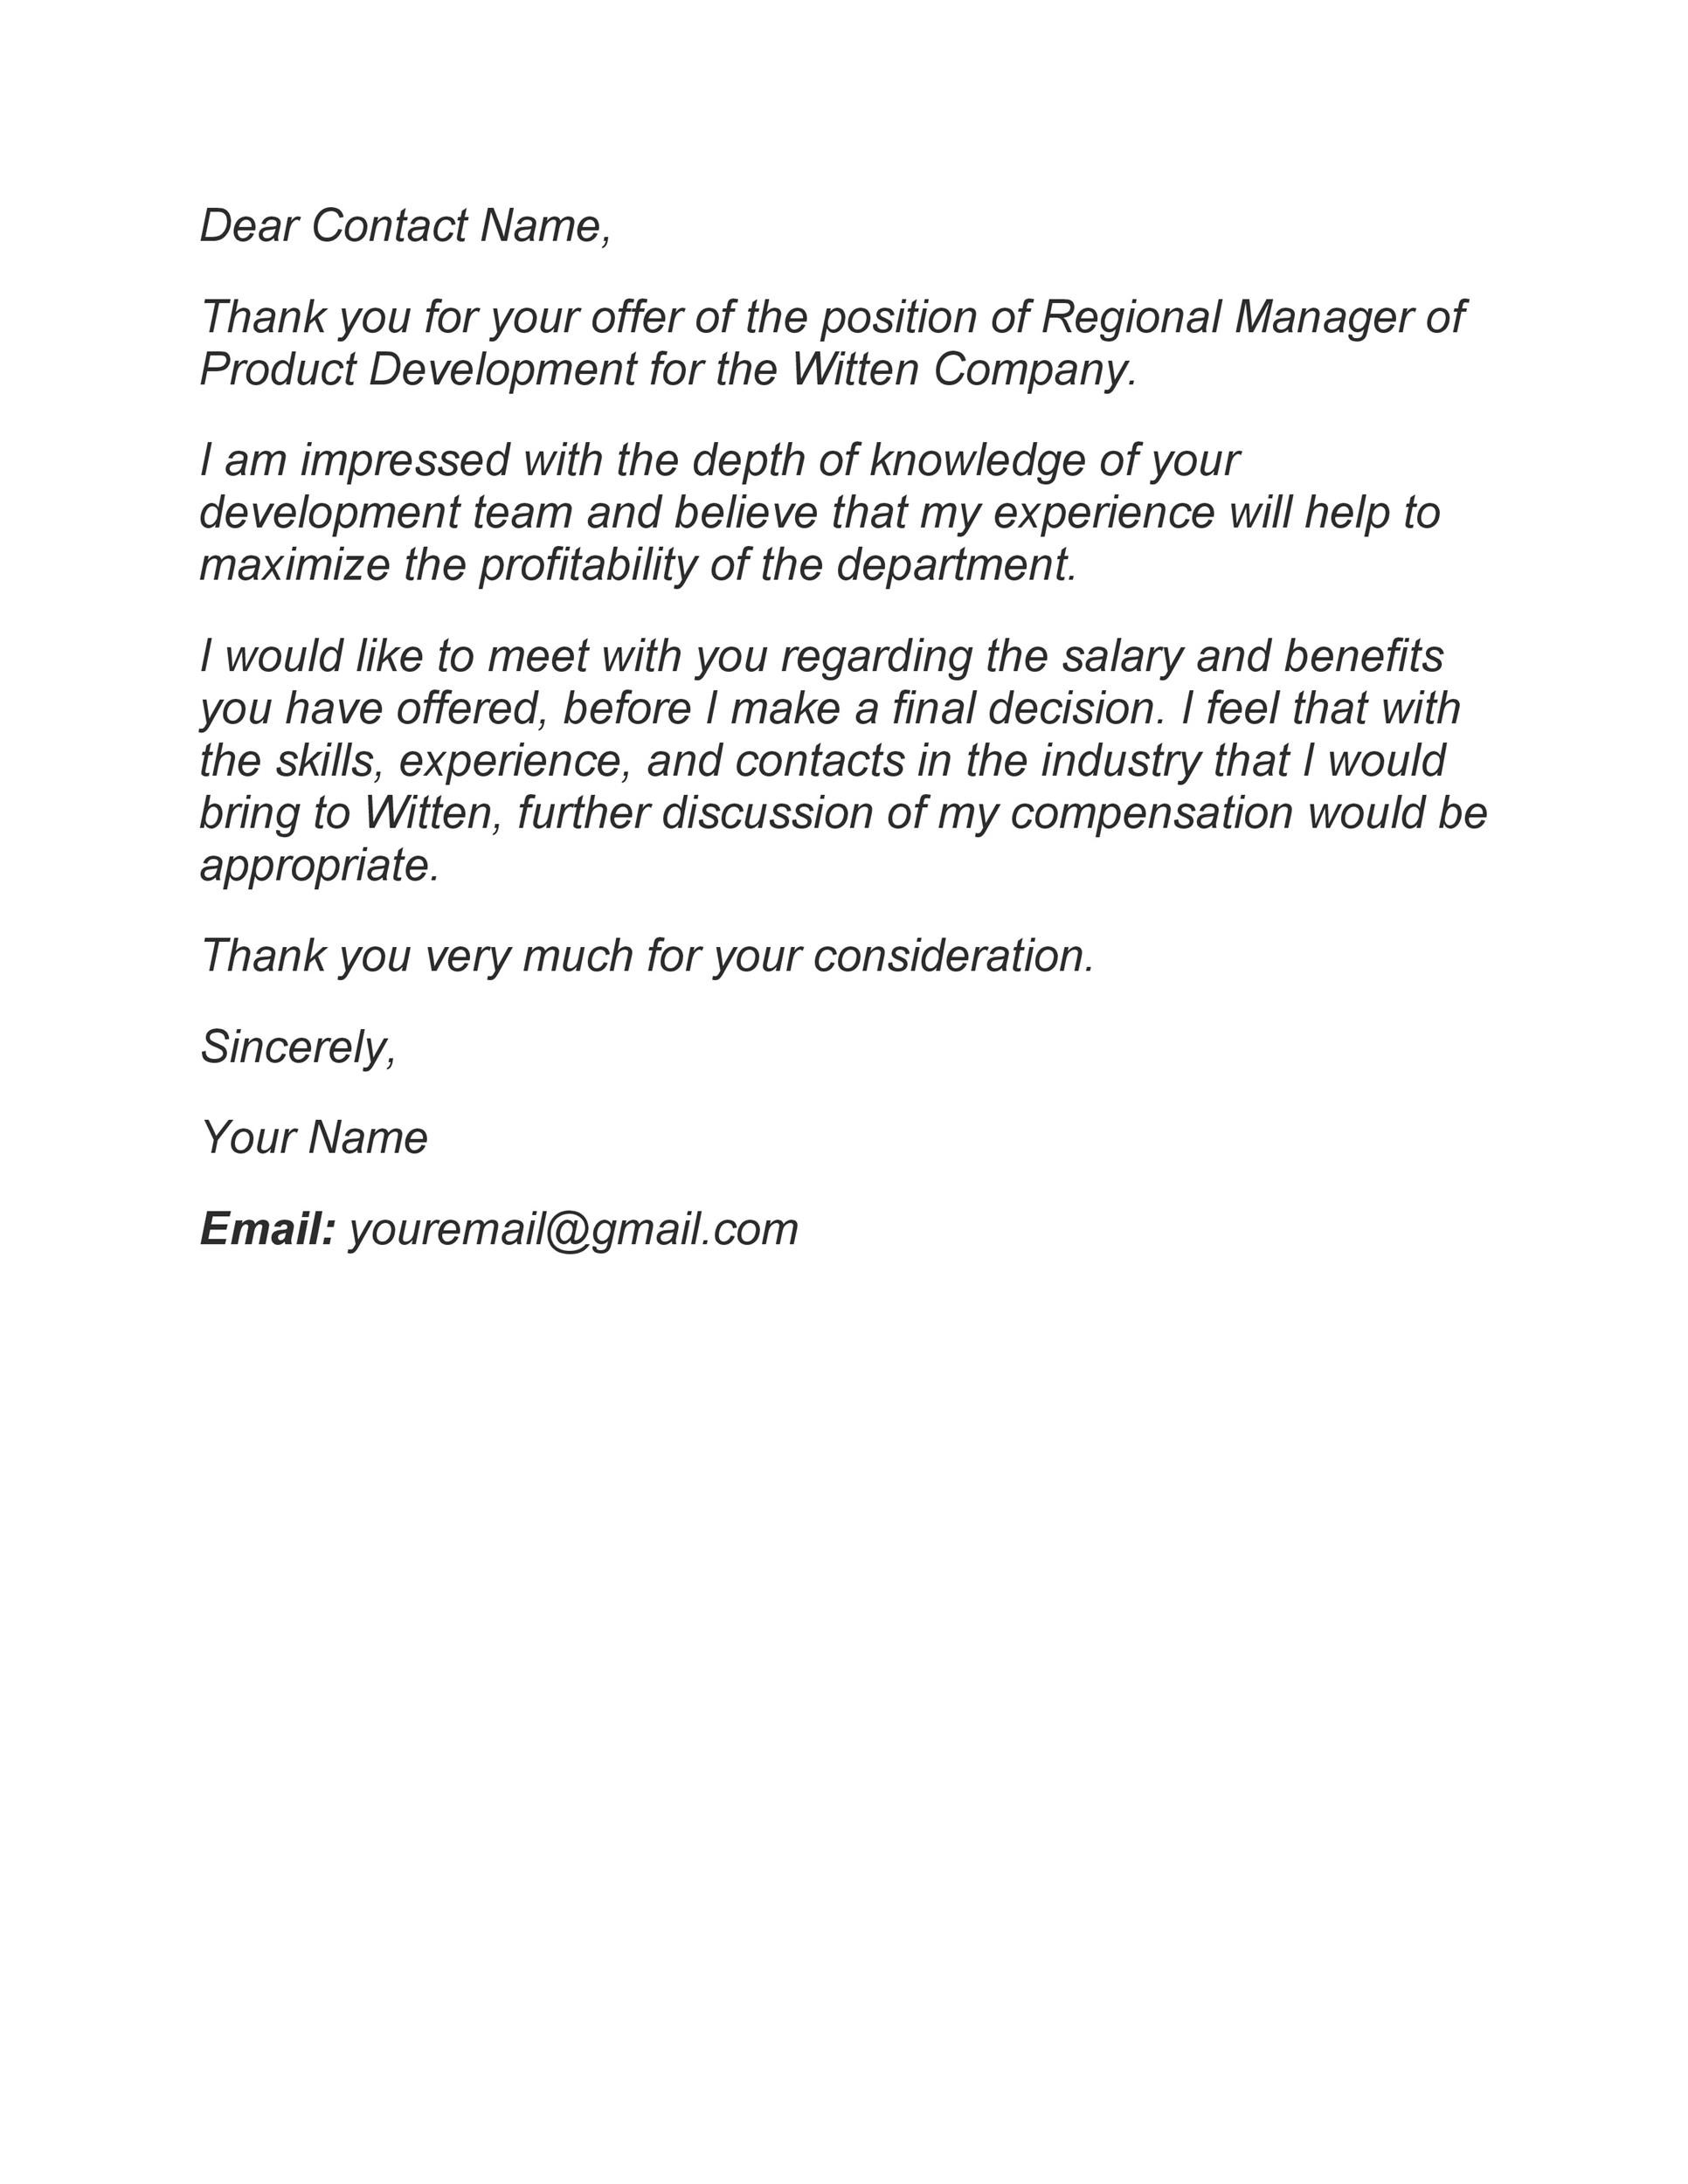 Free salary negotiation letter 45